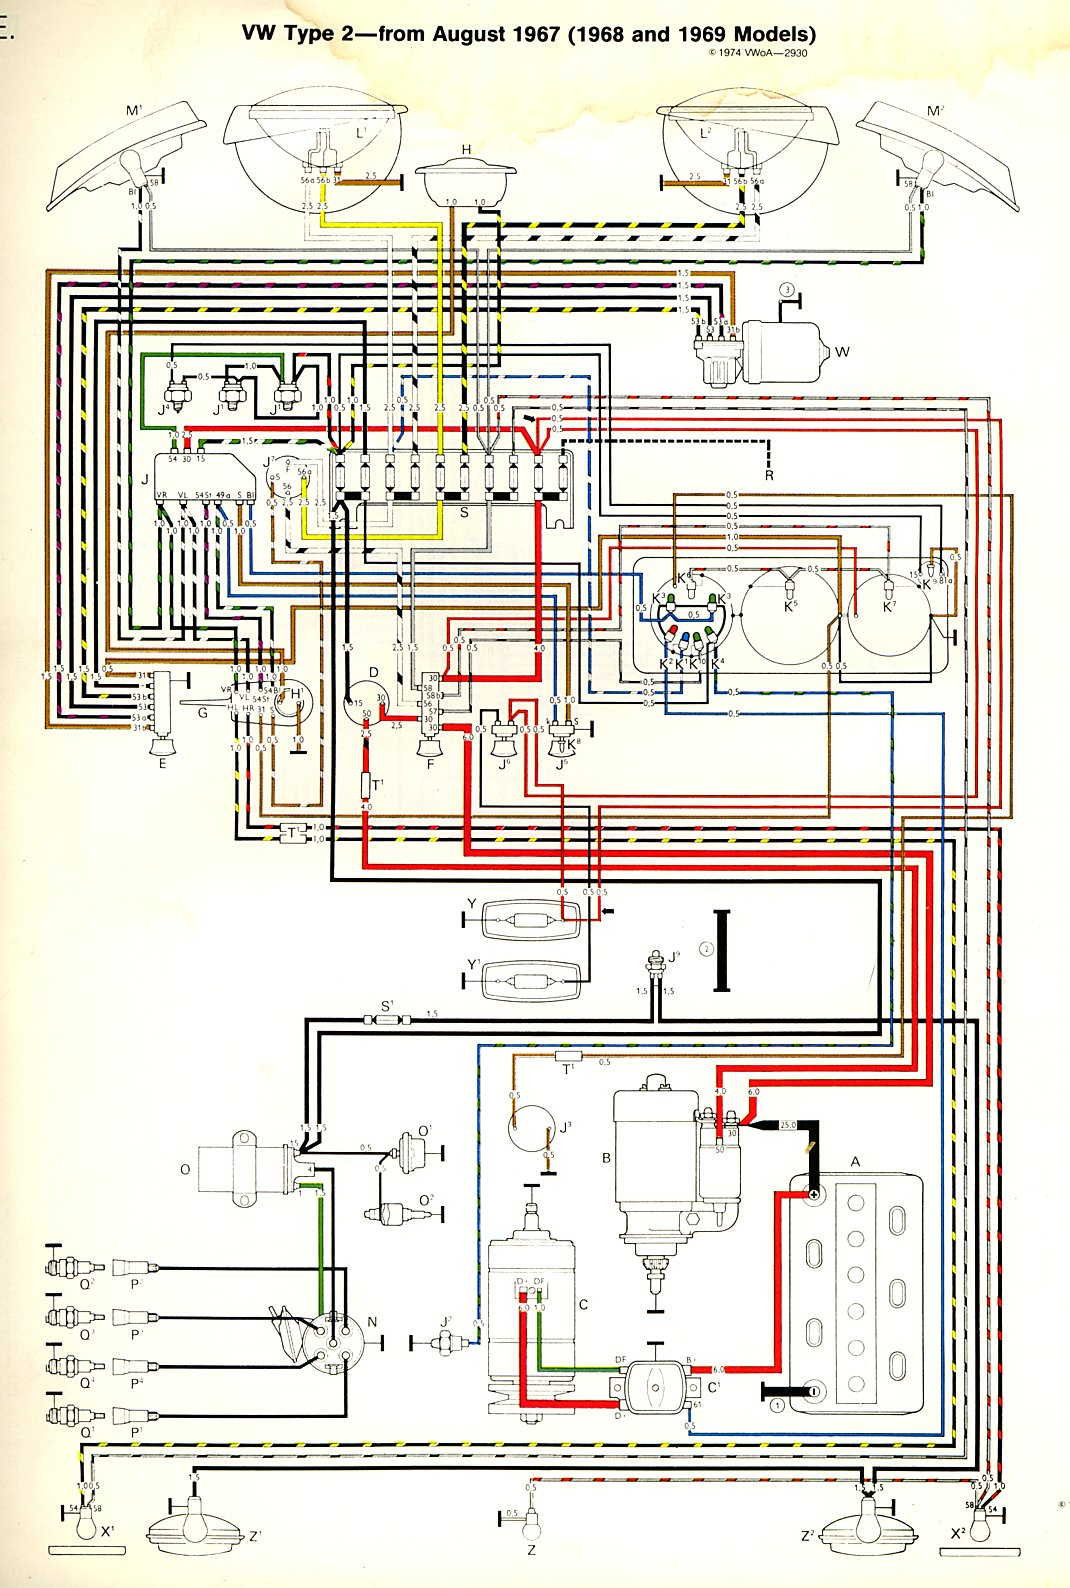 baybus_6869a glaval bus wiring diagram 2000 thomas bus \u2022 wiring diagrams j mci bus wiring schematic at crackthecode.co